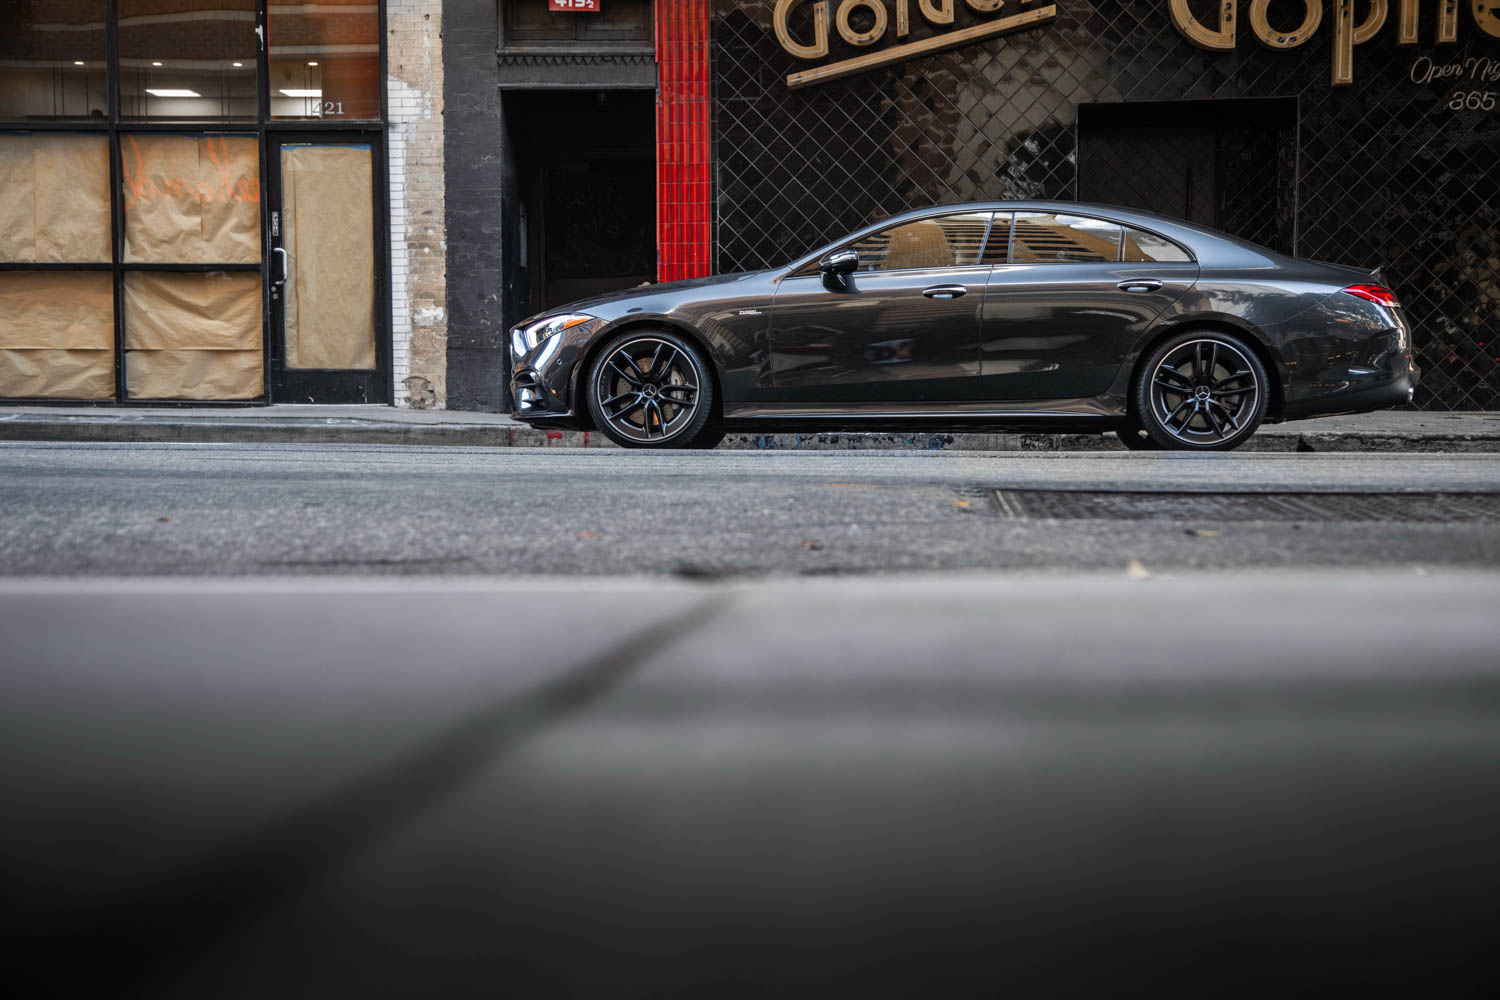 2019 Mercedes-AMG CLS53 on the street